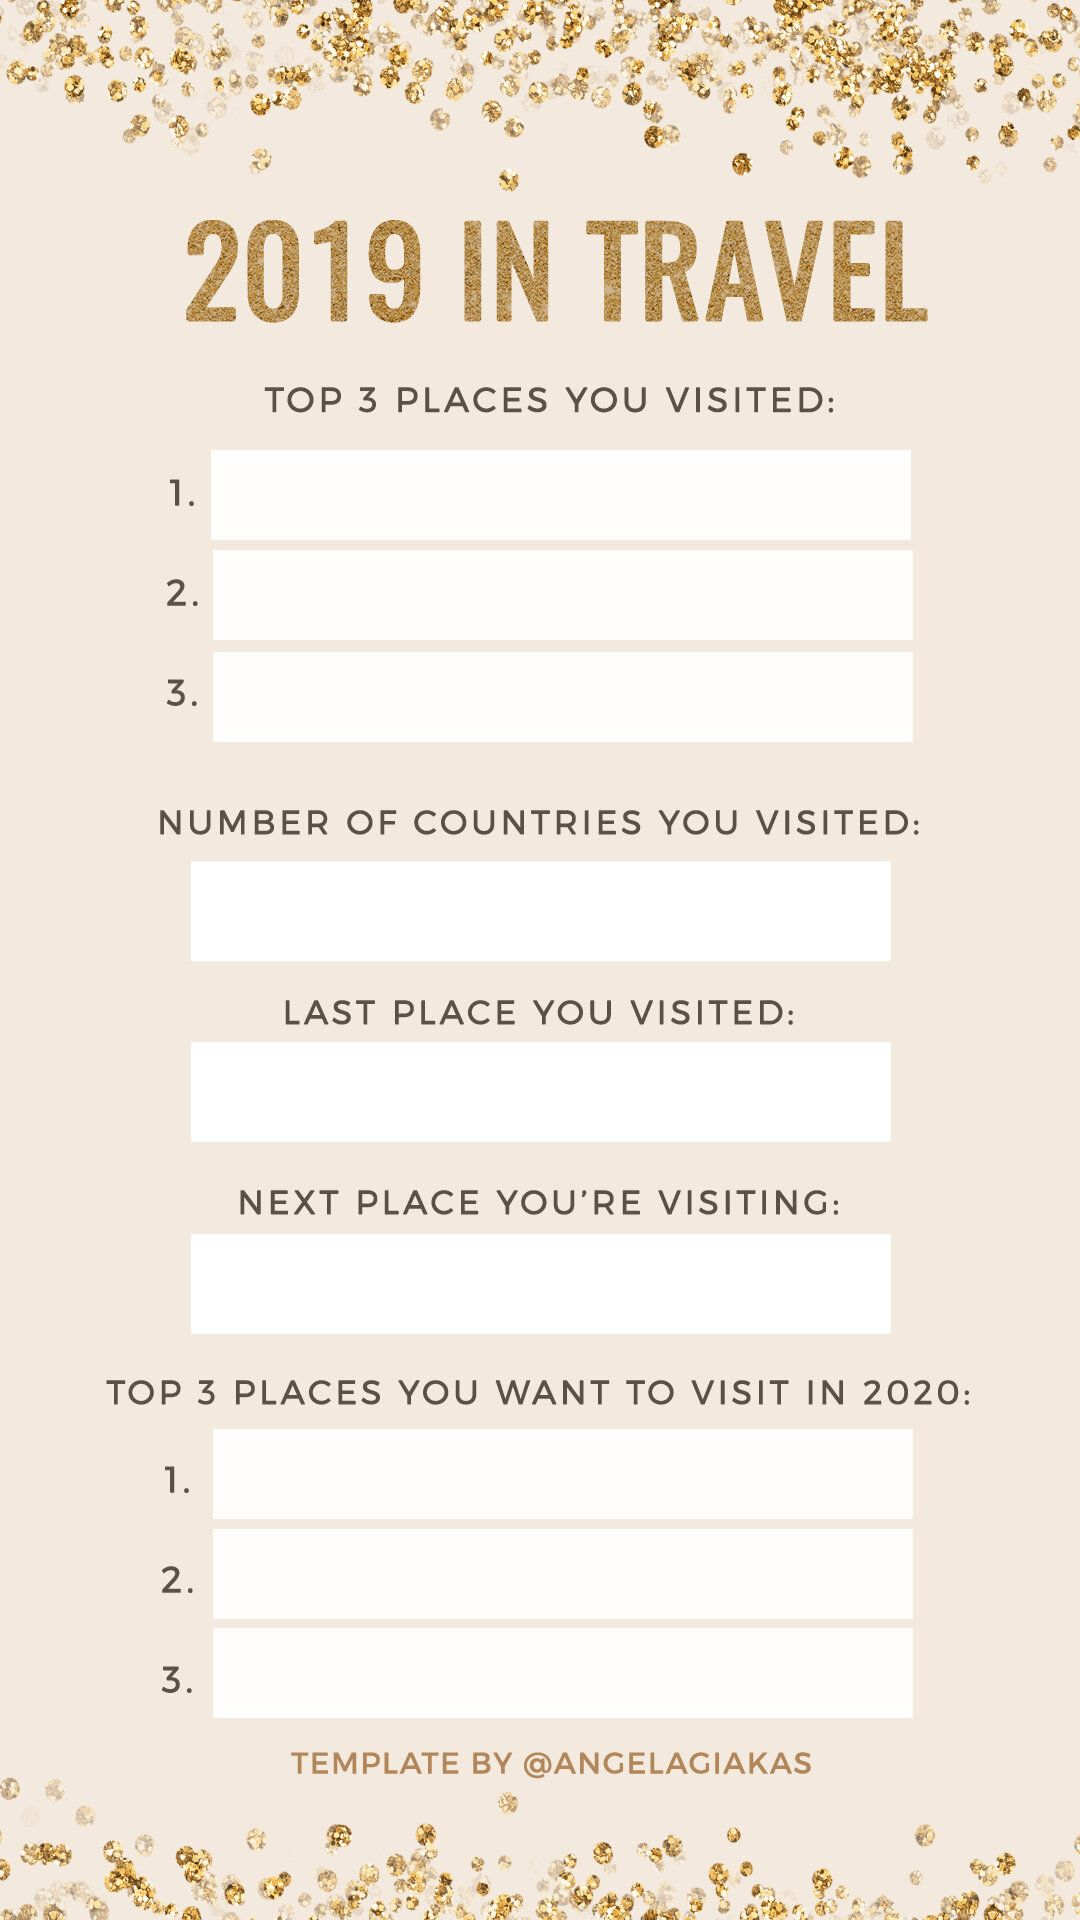 New Years Instagram story template 2019 2020 travel (With